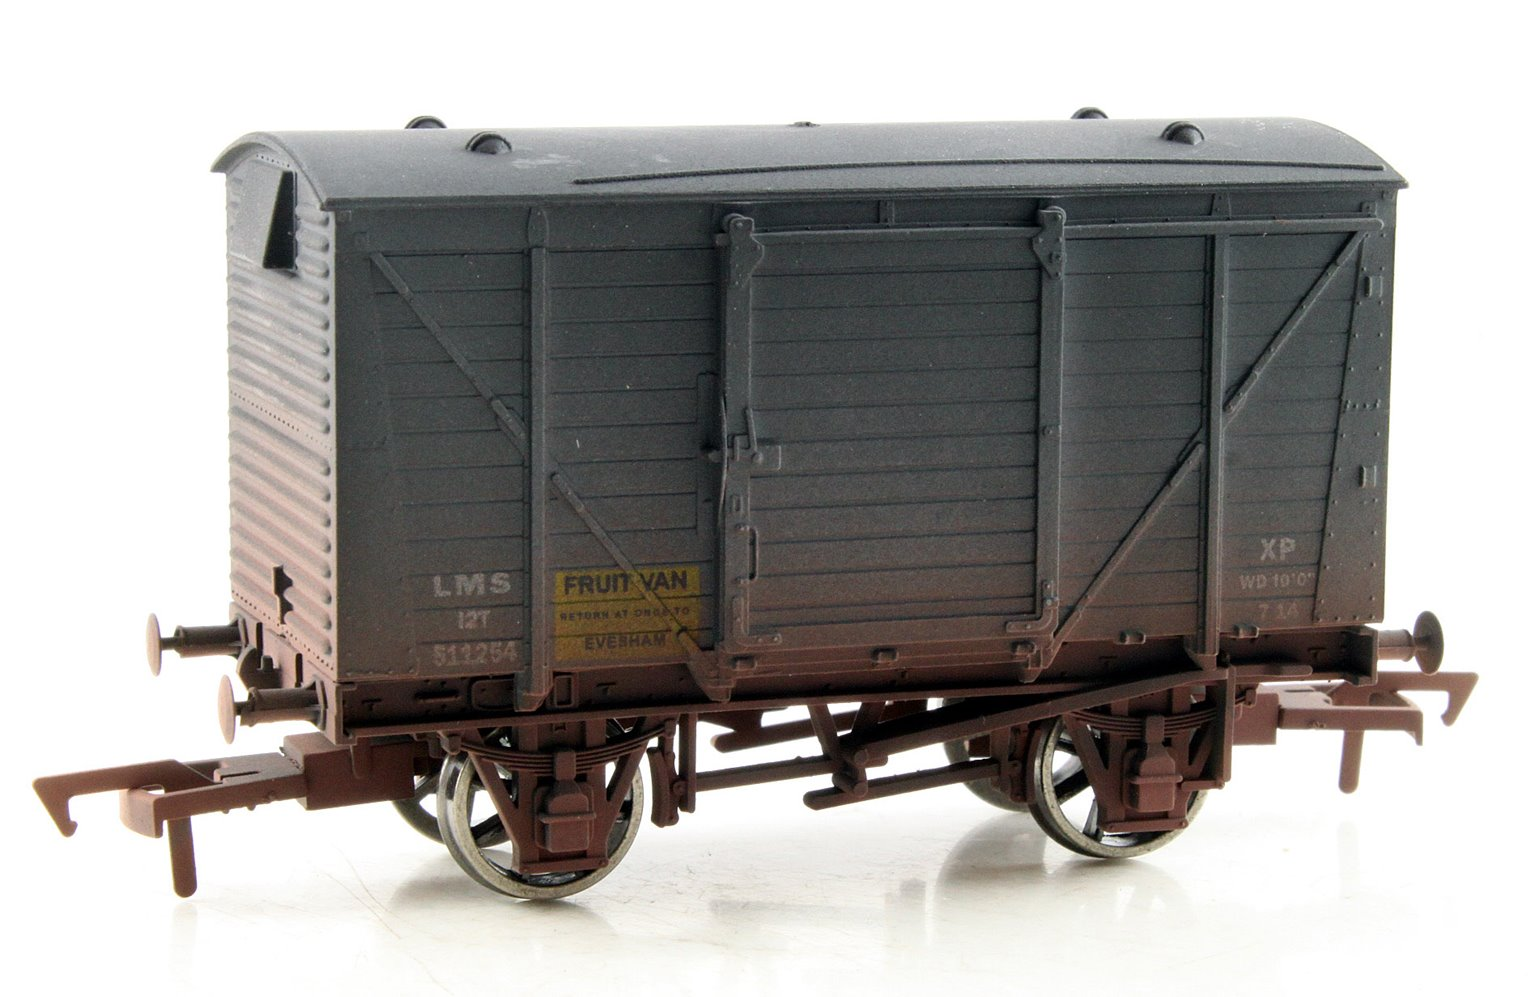 Ventilated Van LMS Fruit Van 511254 Weathered